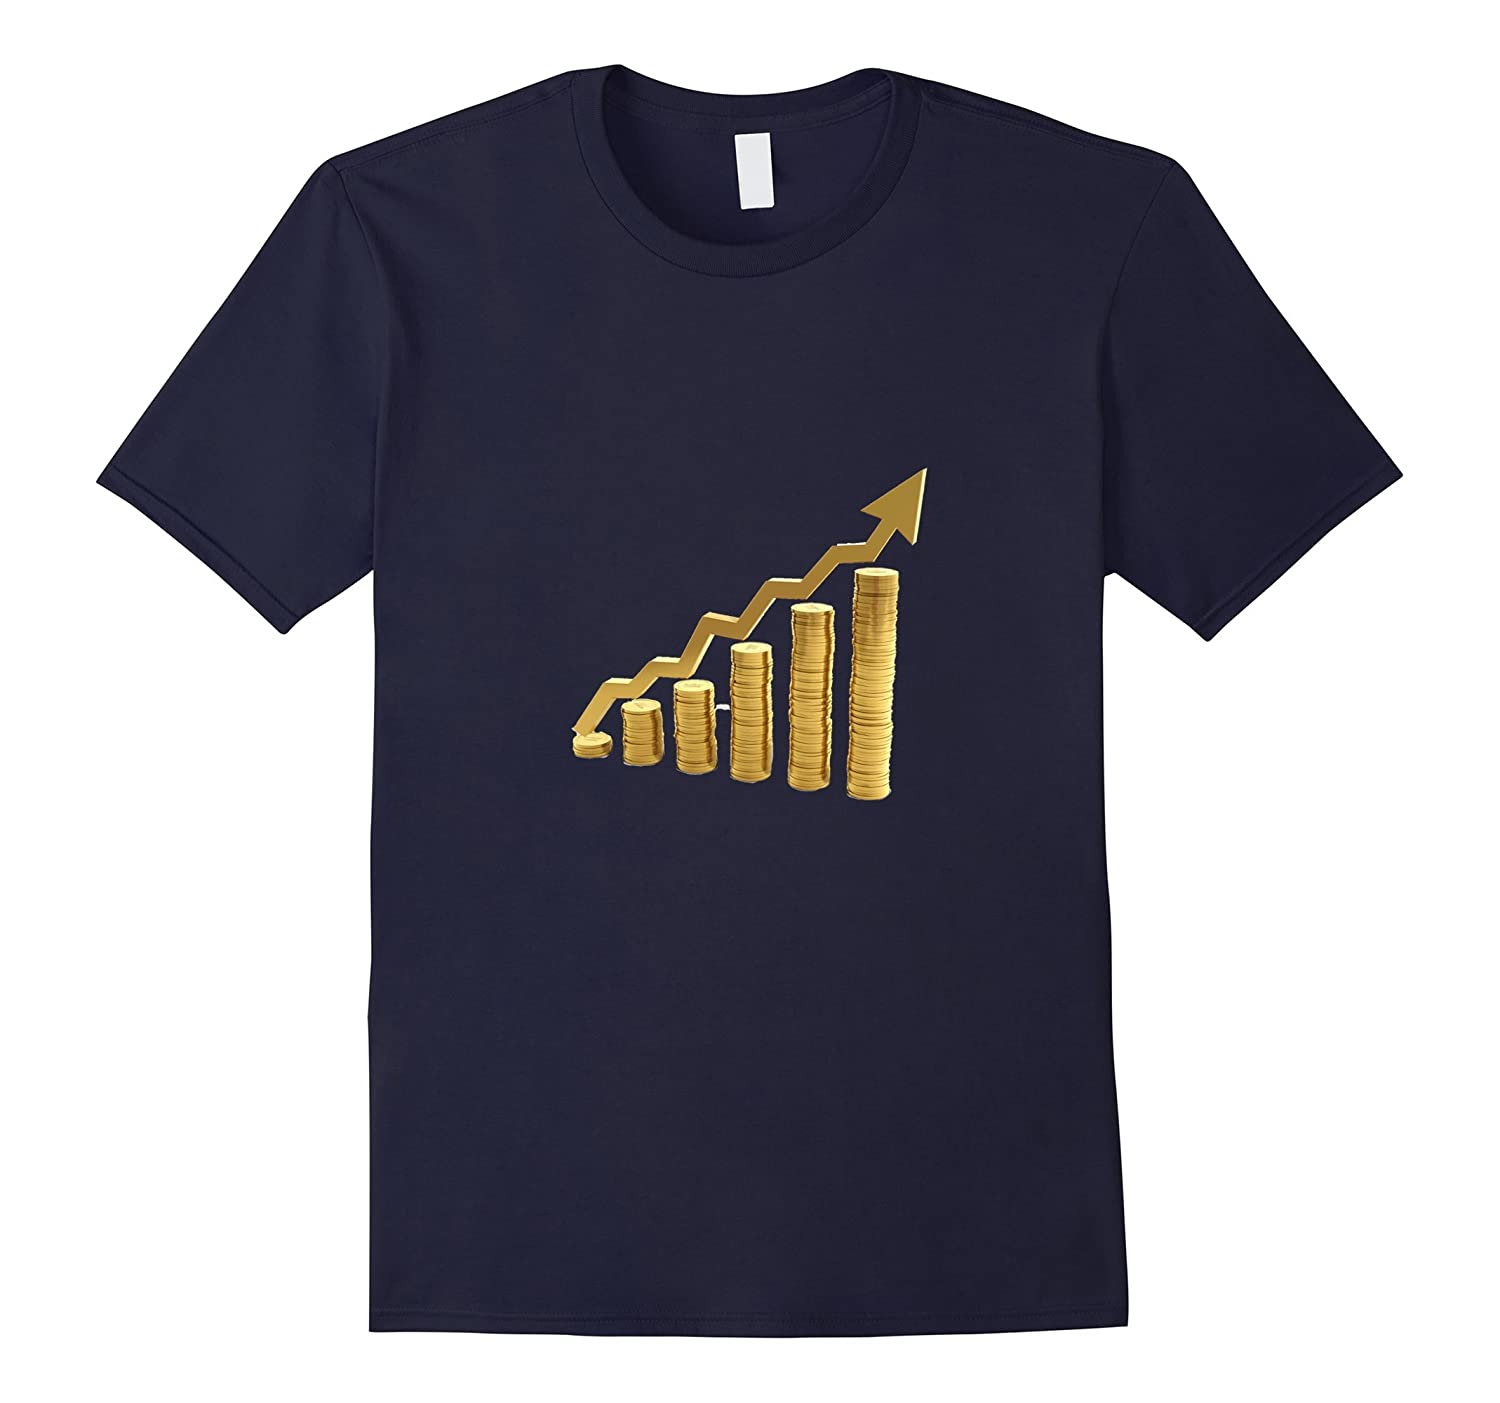 Line Bar Graph T-Shirt | Trend Up Increase Better-T-Shirt